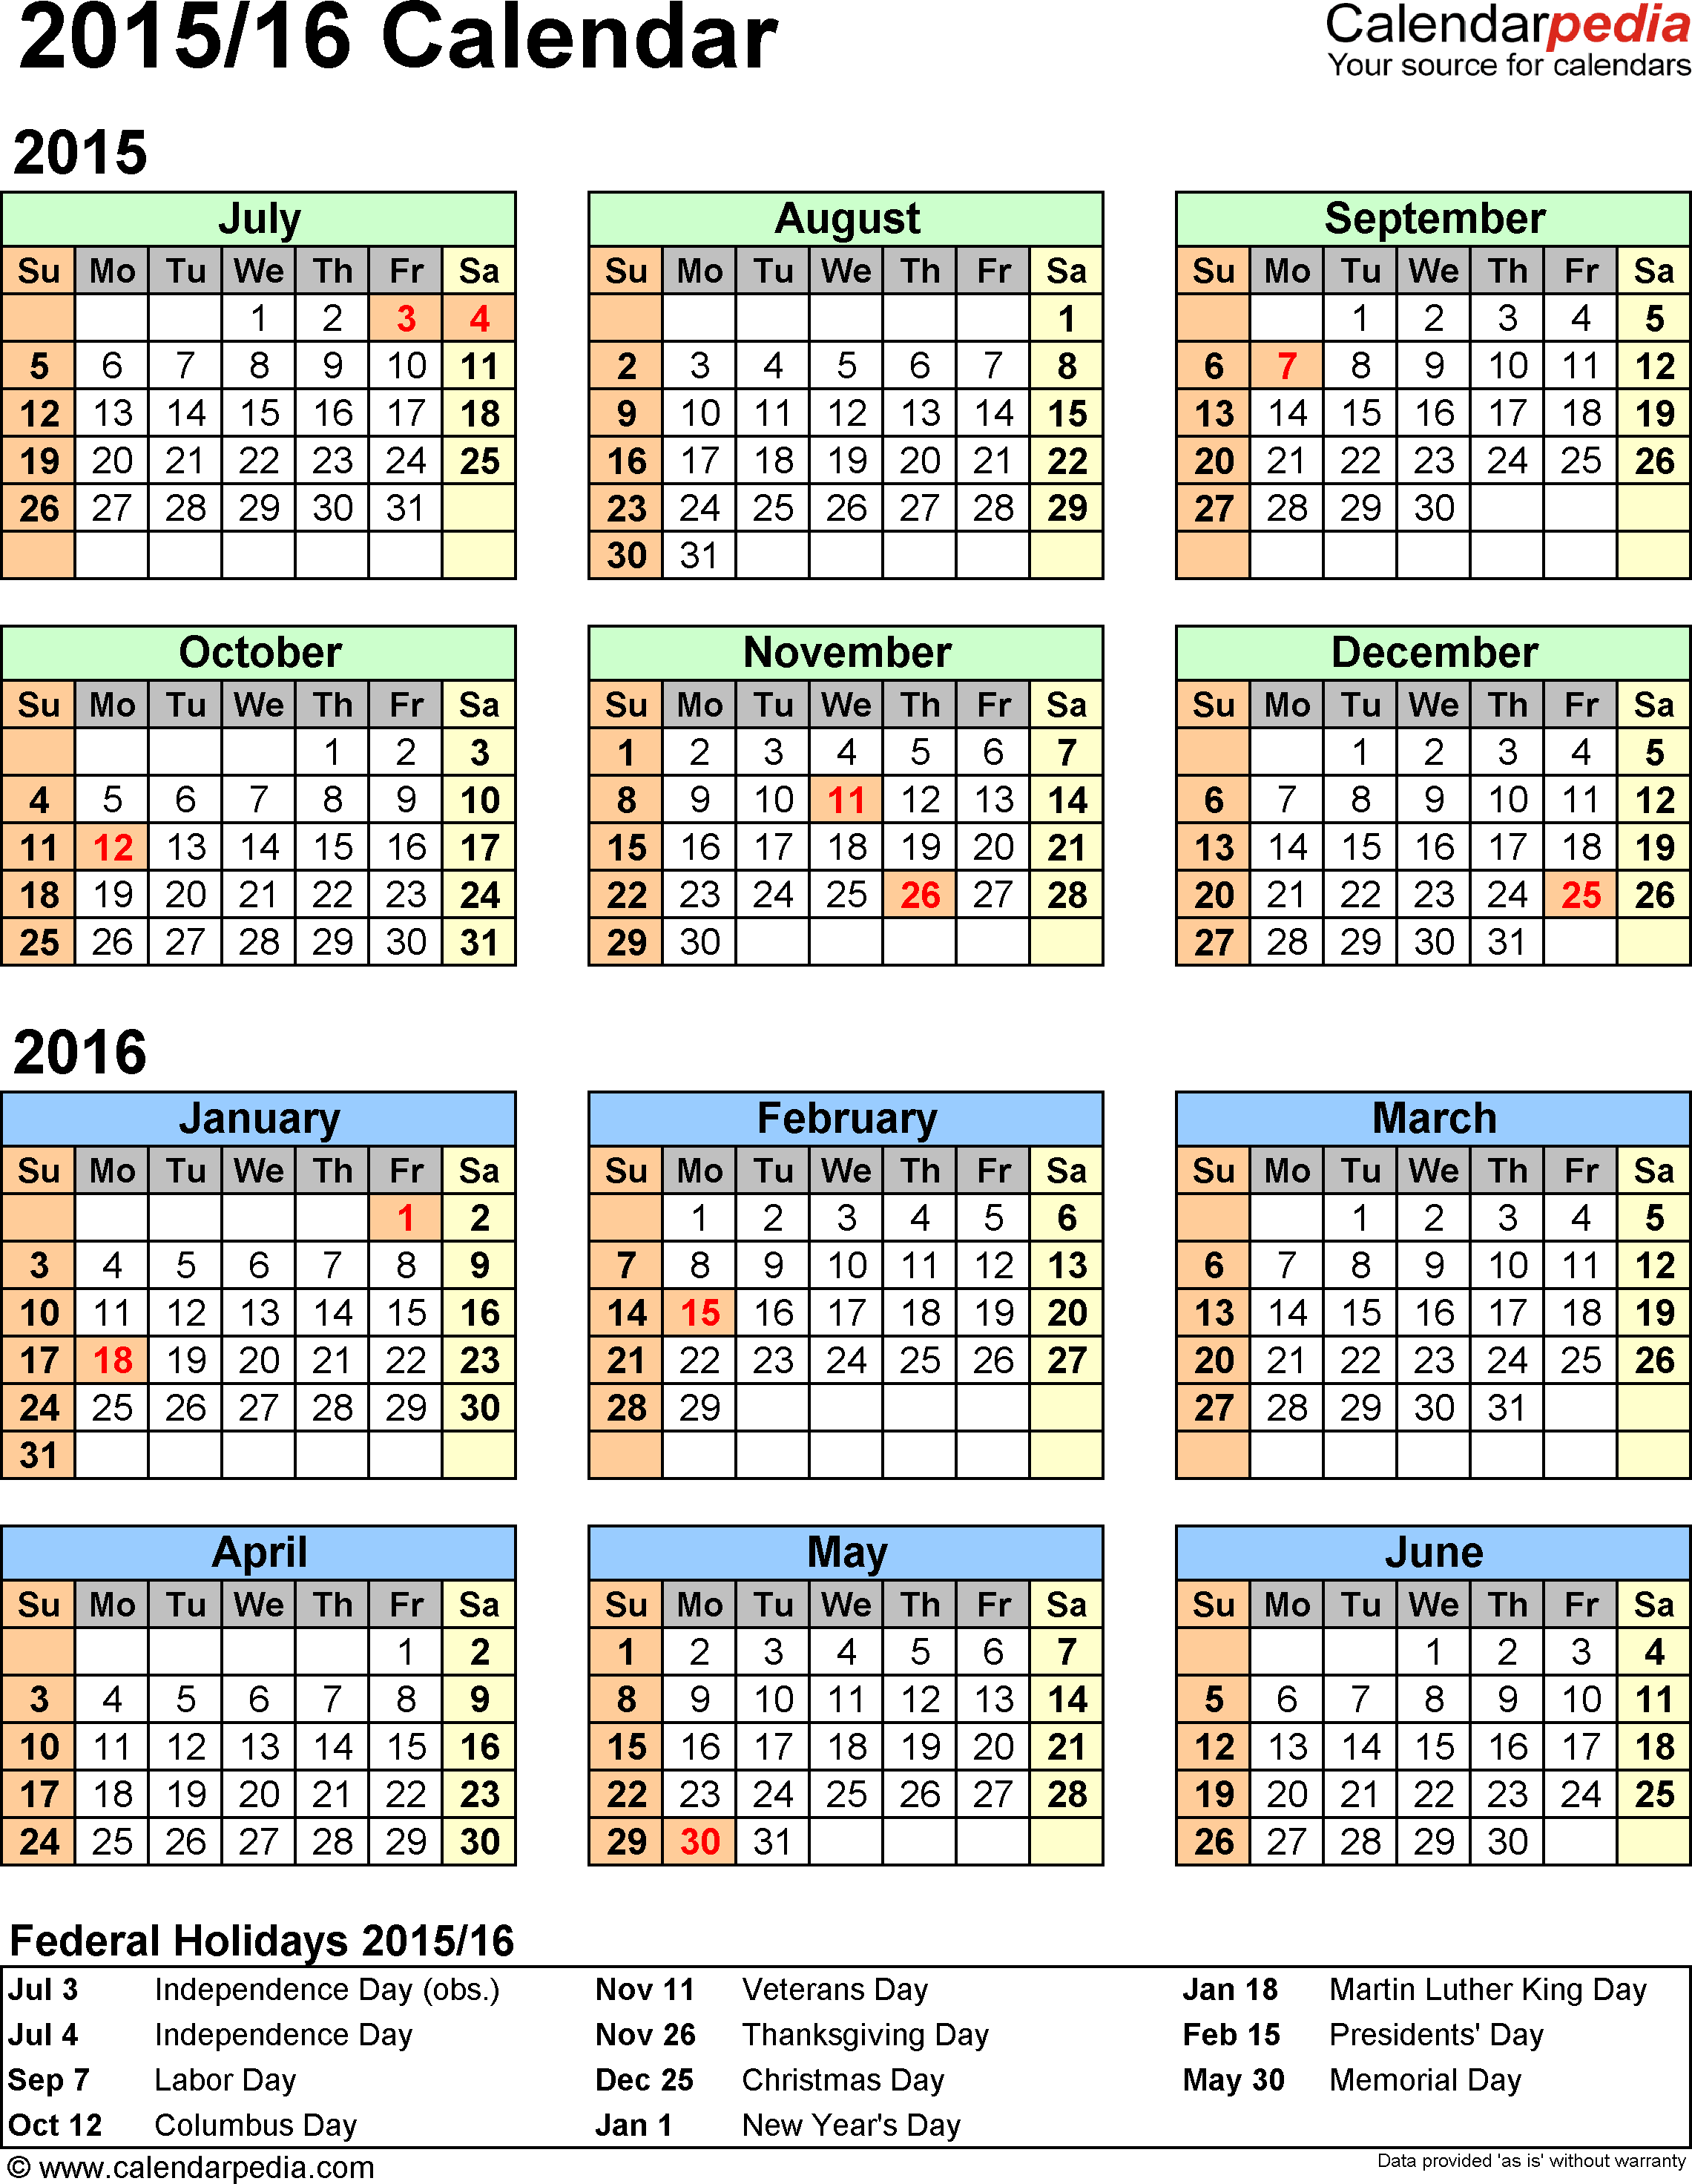 download excel calendar 2015